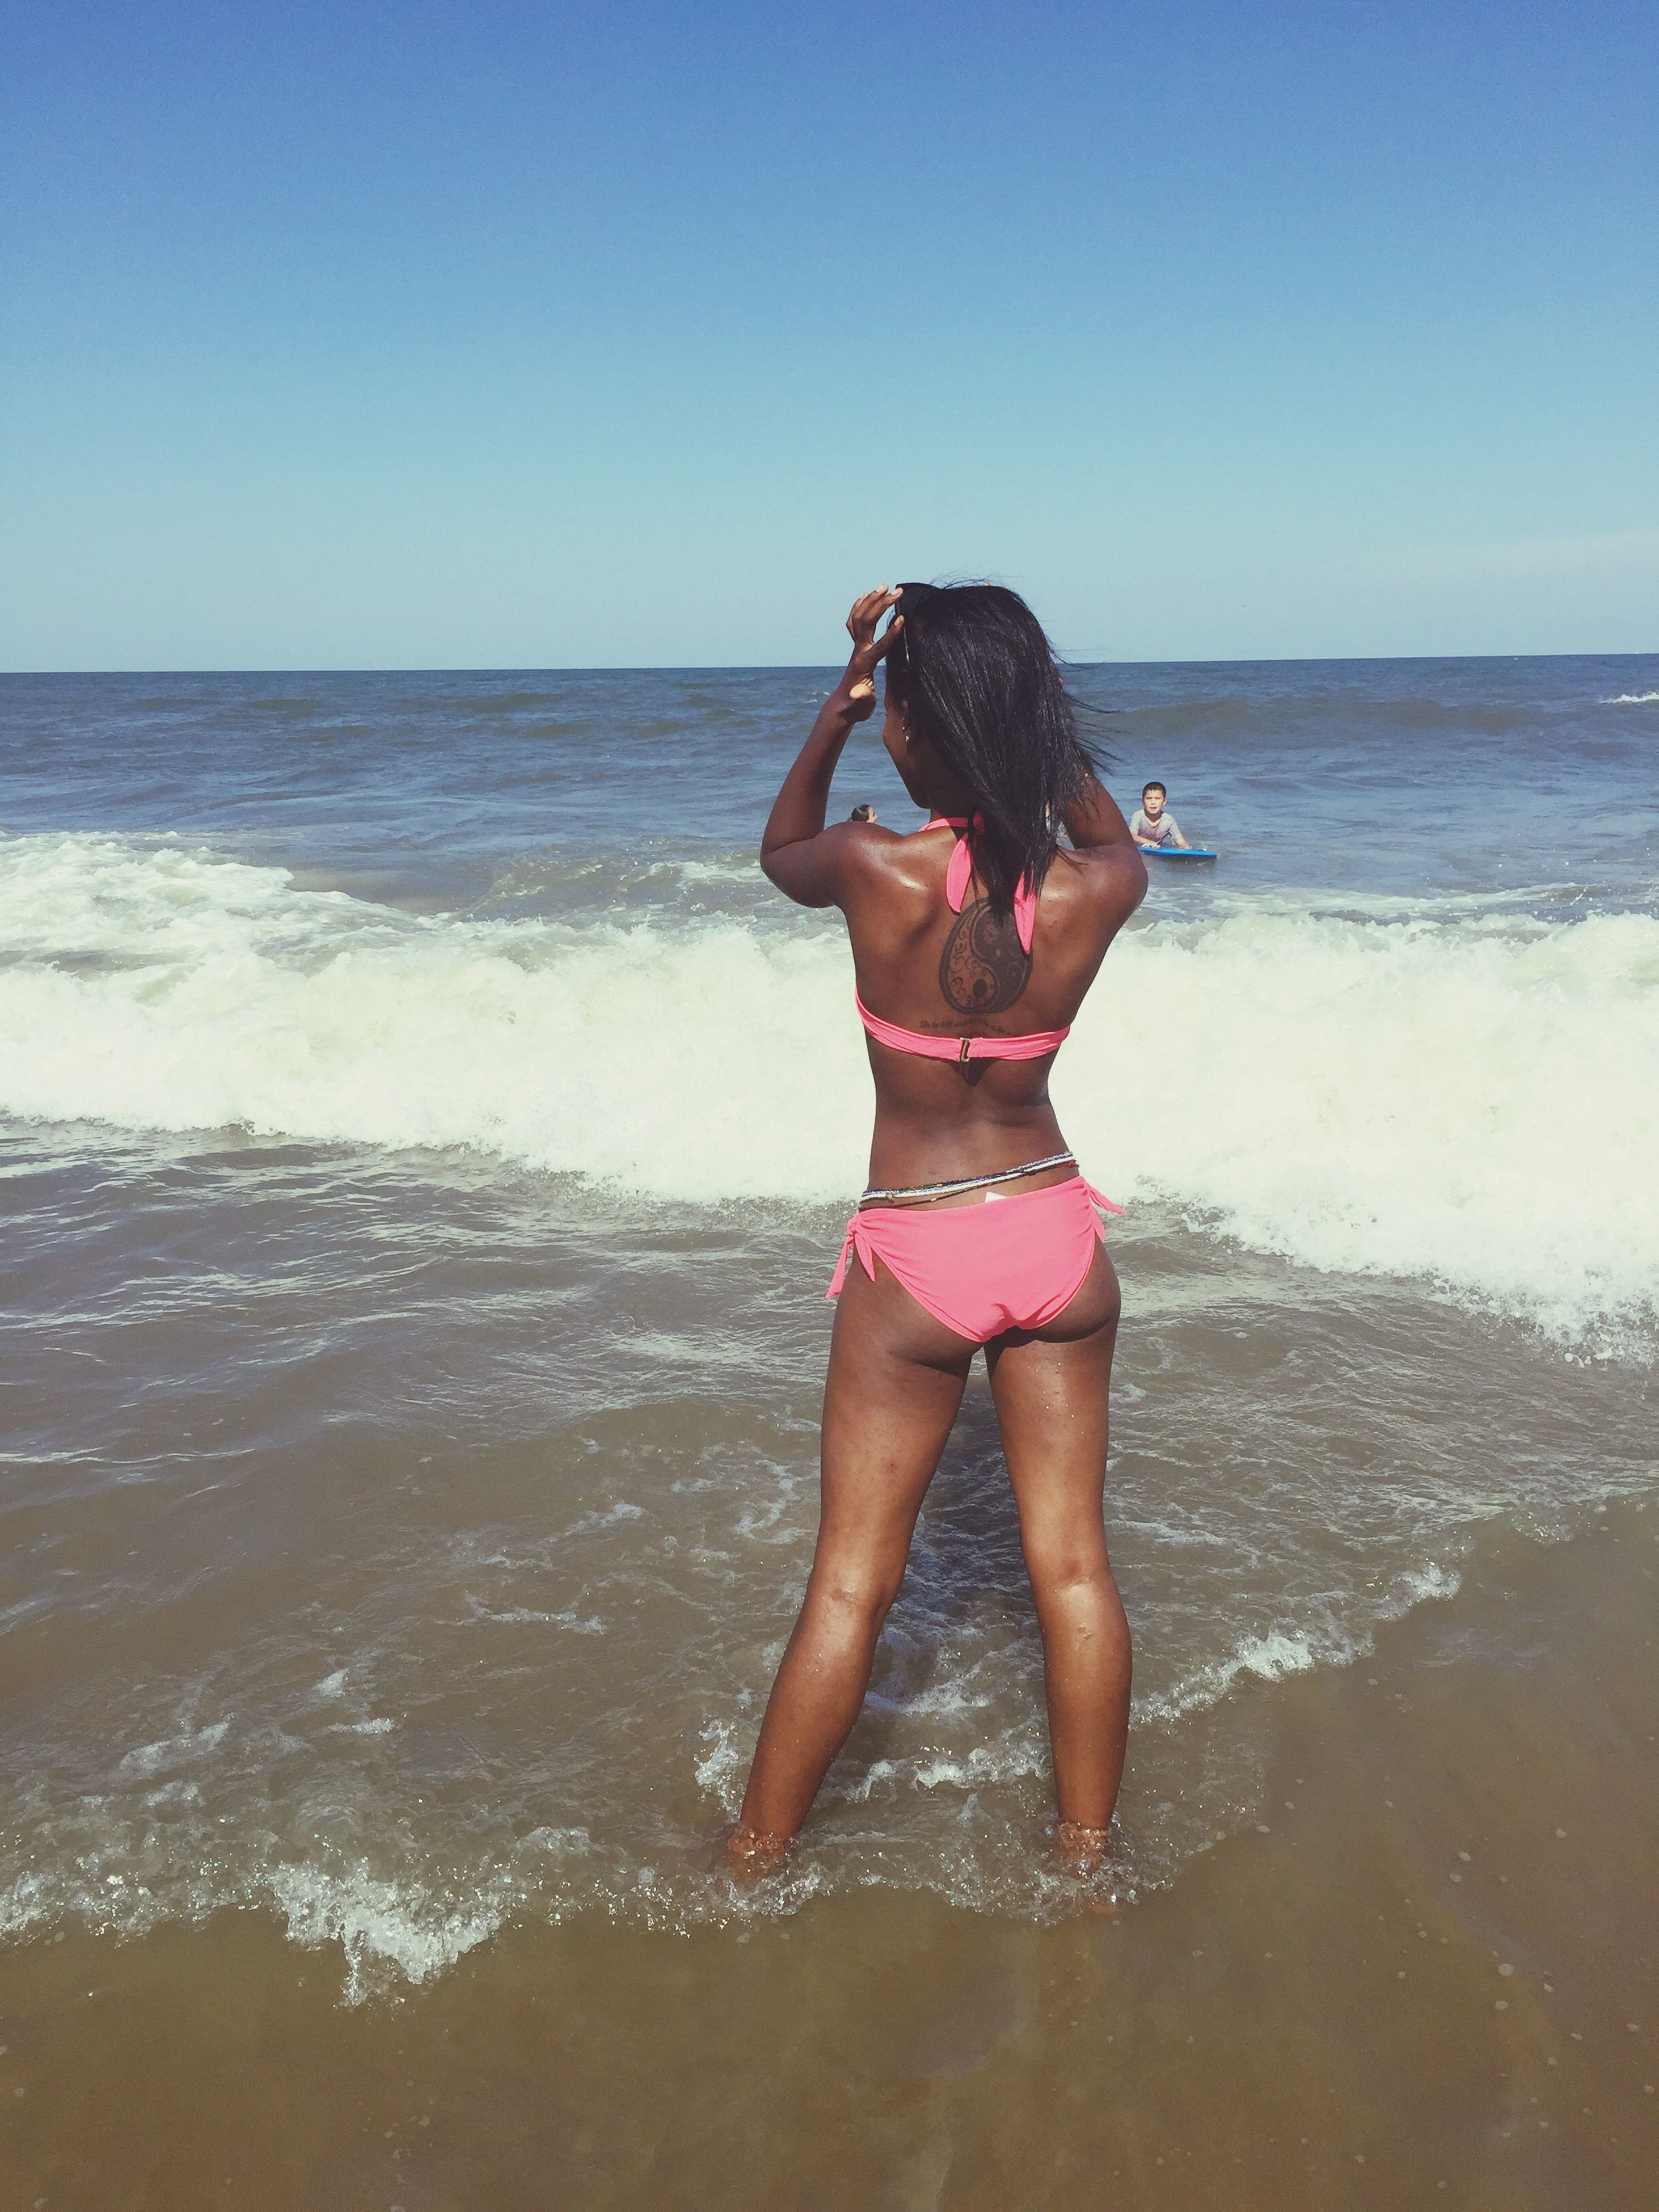 sea, water, horizon over water, young adult, beach, clear sky, lifestyles, leisure activity, young women, full length, shore, vacations, person, copy space, wave, standing, long hair, scenics